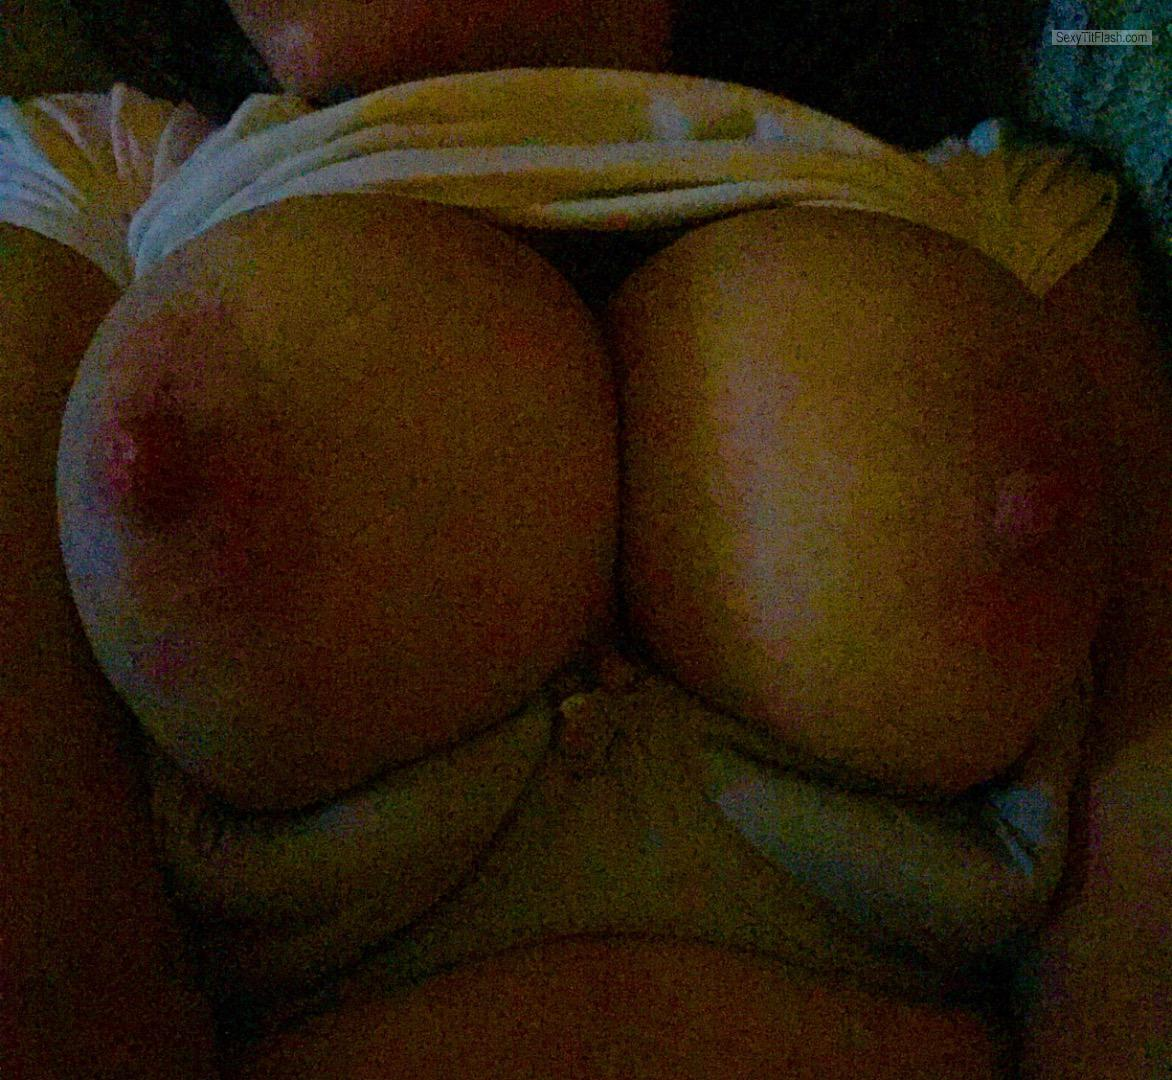 Tit Flash: My Big Tits (Selfie) - Milf Tits's from United Kingdom